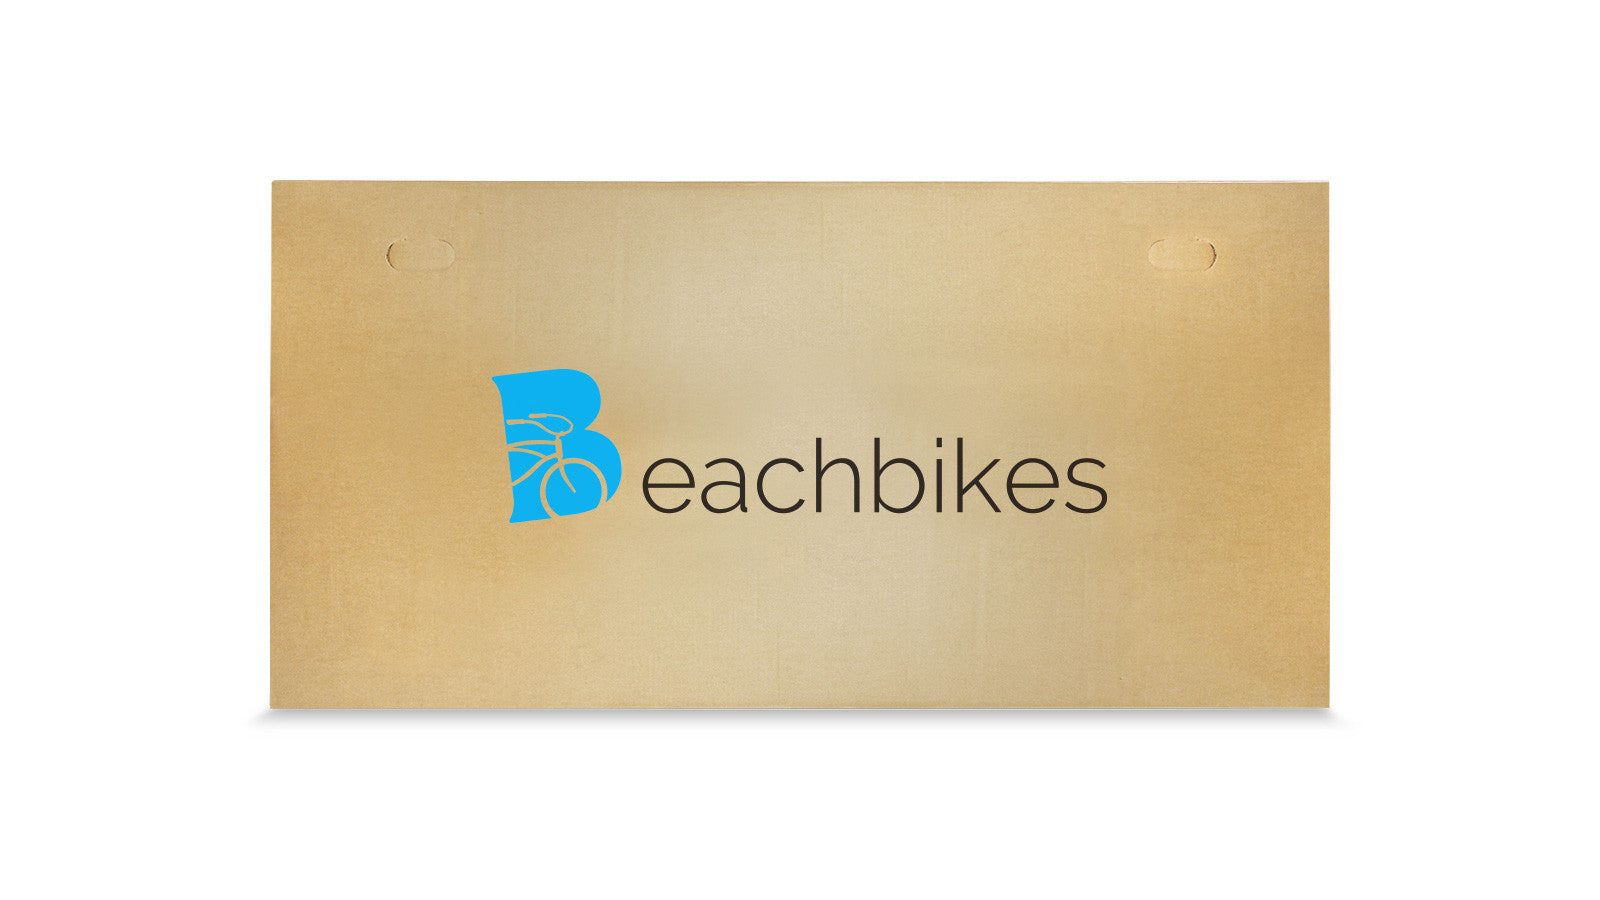 Do Beachbikes Come Assembled or in a Box?